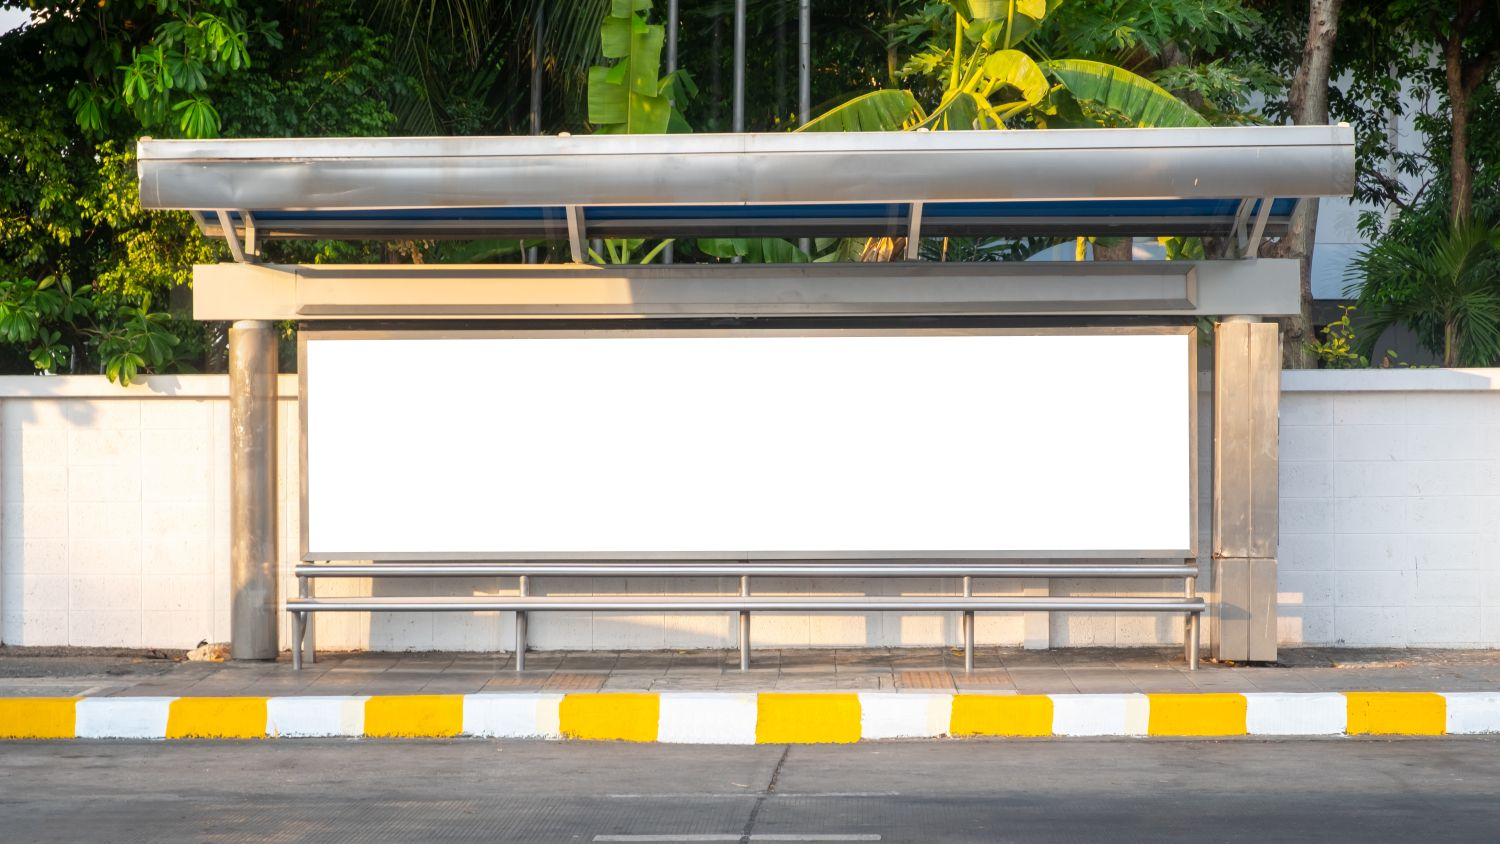 Bus stop bench with blank advertising space